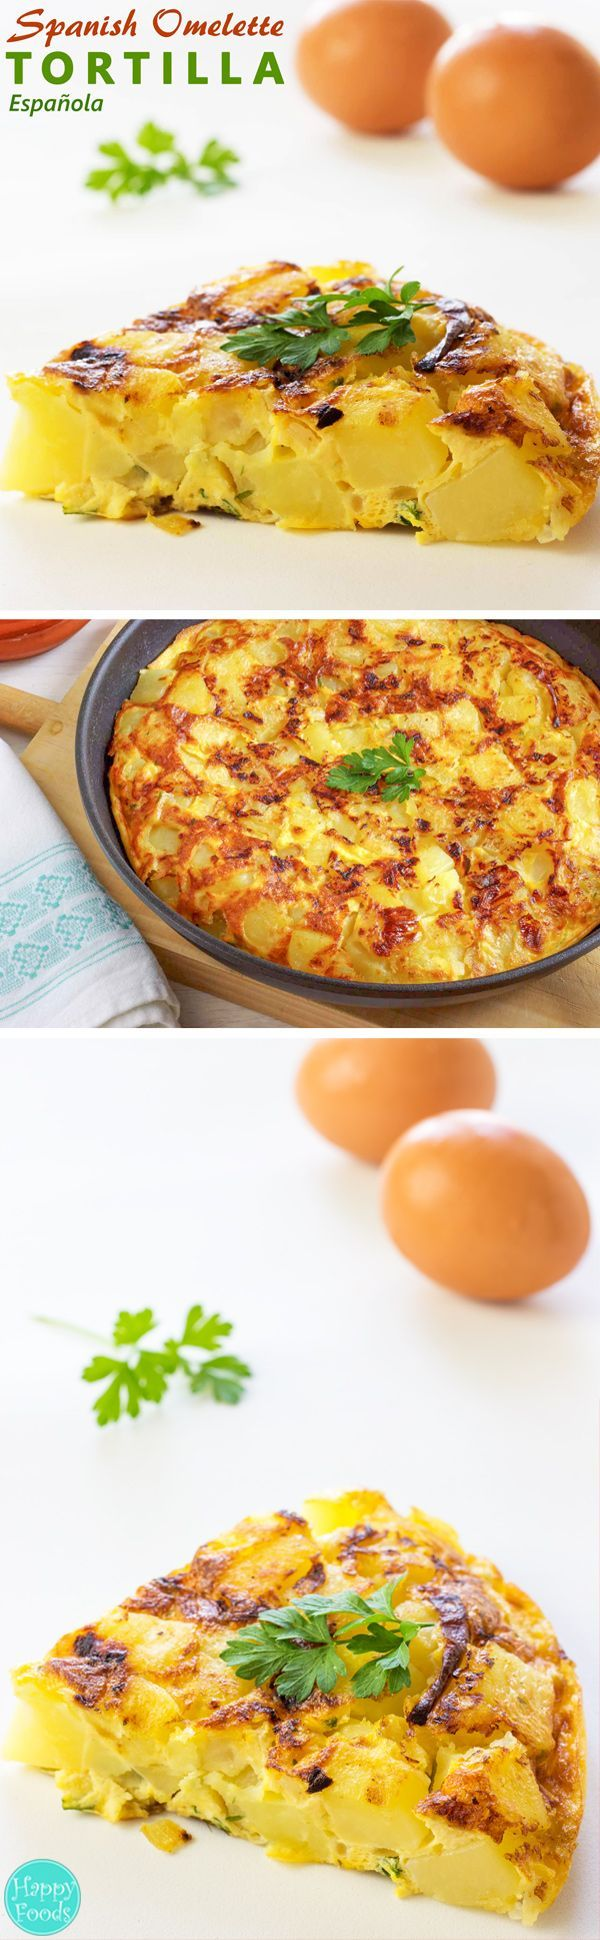 Spanish Omelette (Tortilla Española) - This traditional Spanish dish is made from eggs and potatoes. Easy recipe from Spain. | http://happyfoodstube.com